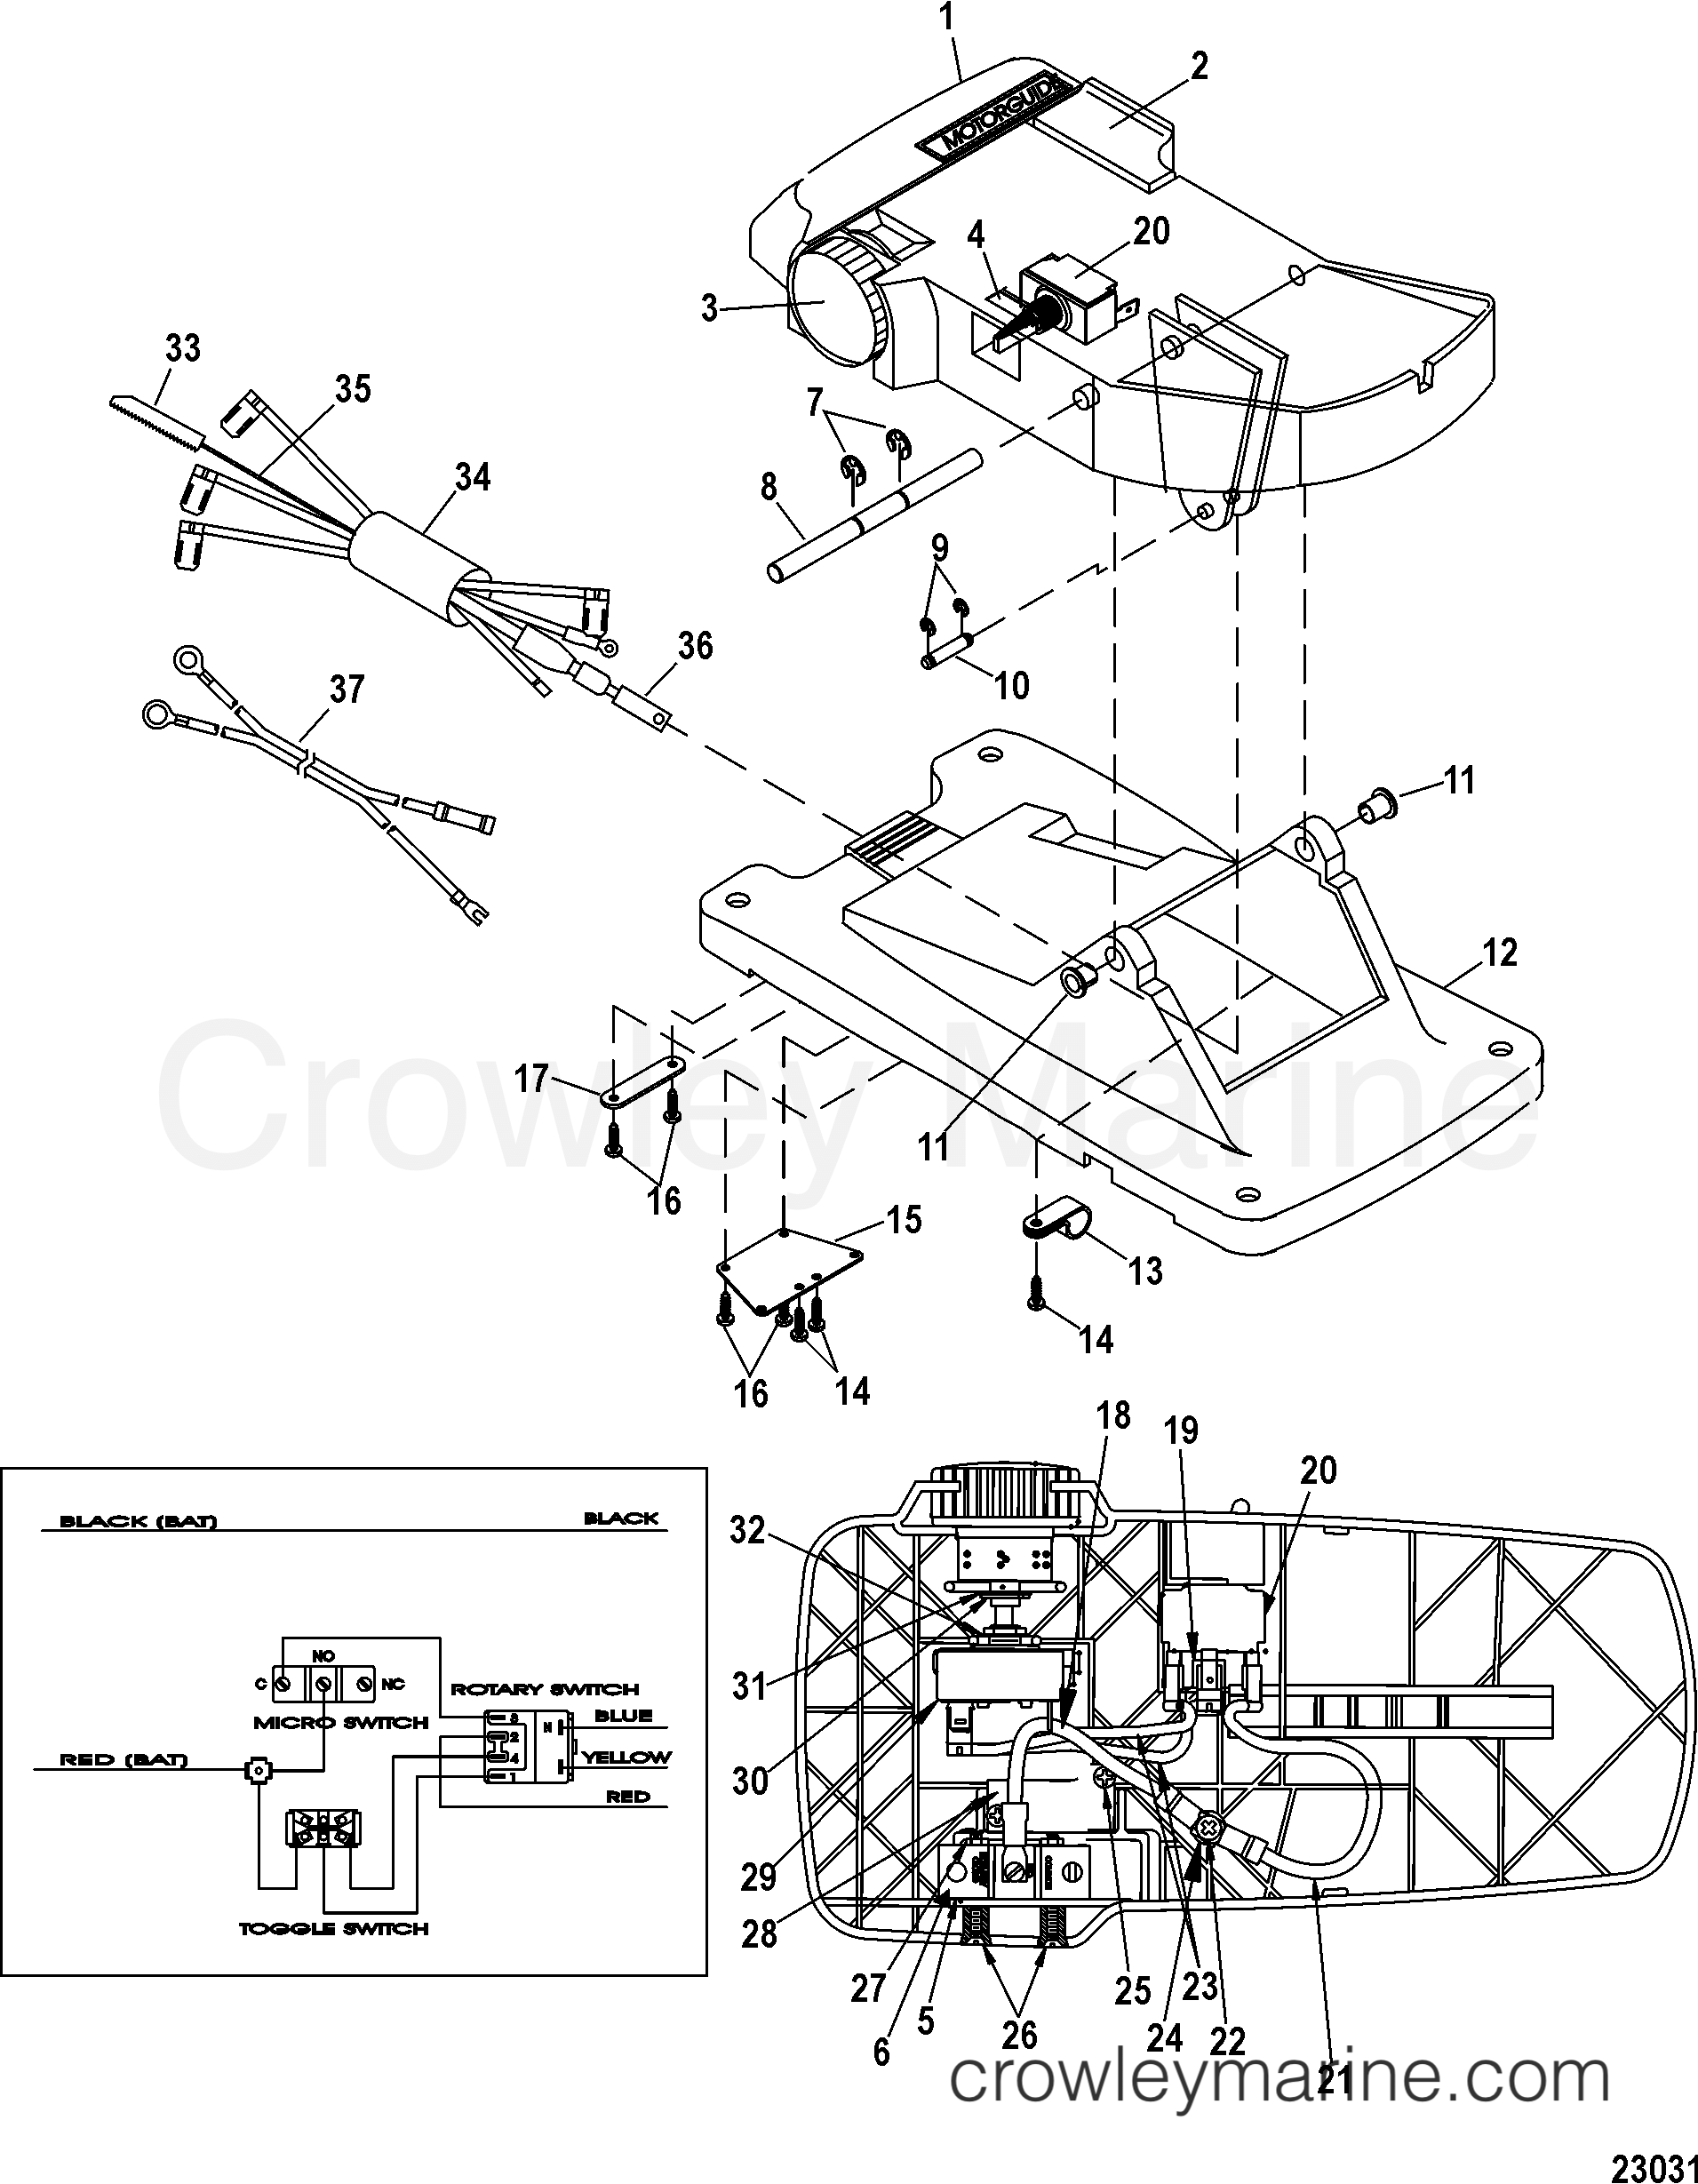 Foot Pedal Diagram Download Wiring Diagrams Singer Assembly M899721t 2007 Motorguide 12v Rh Crowleymarine Com Minn Kota Switch